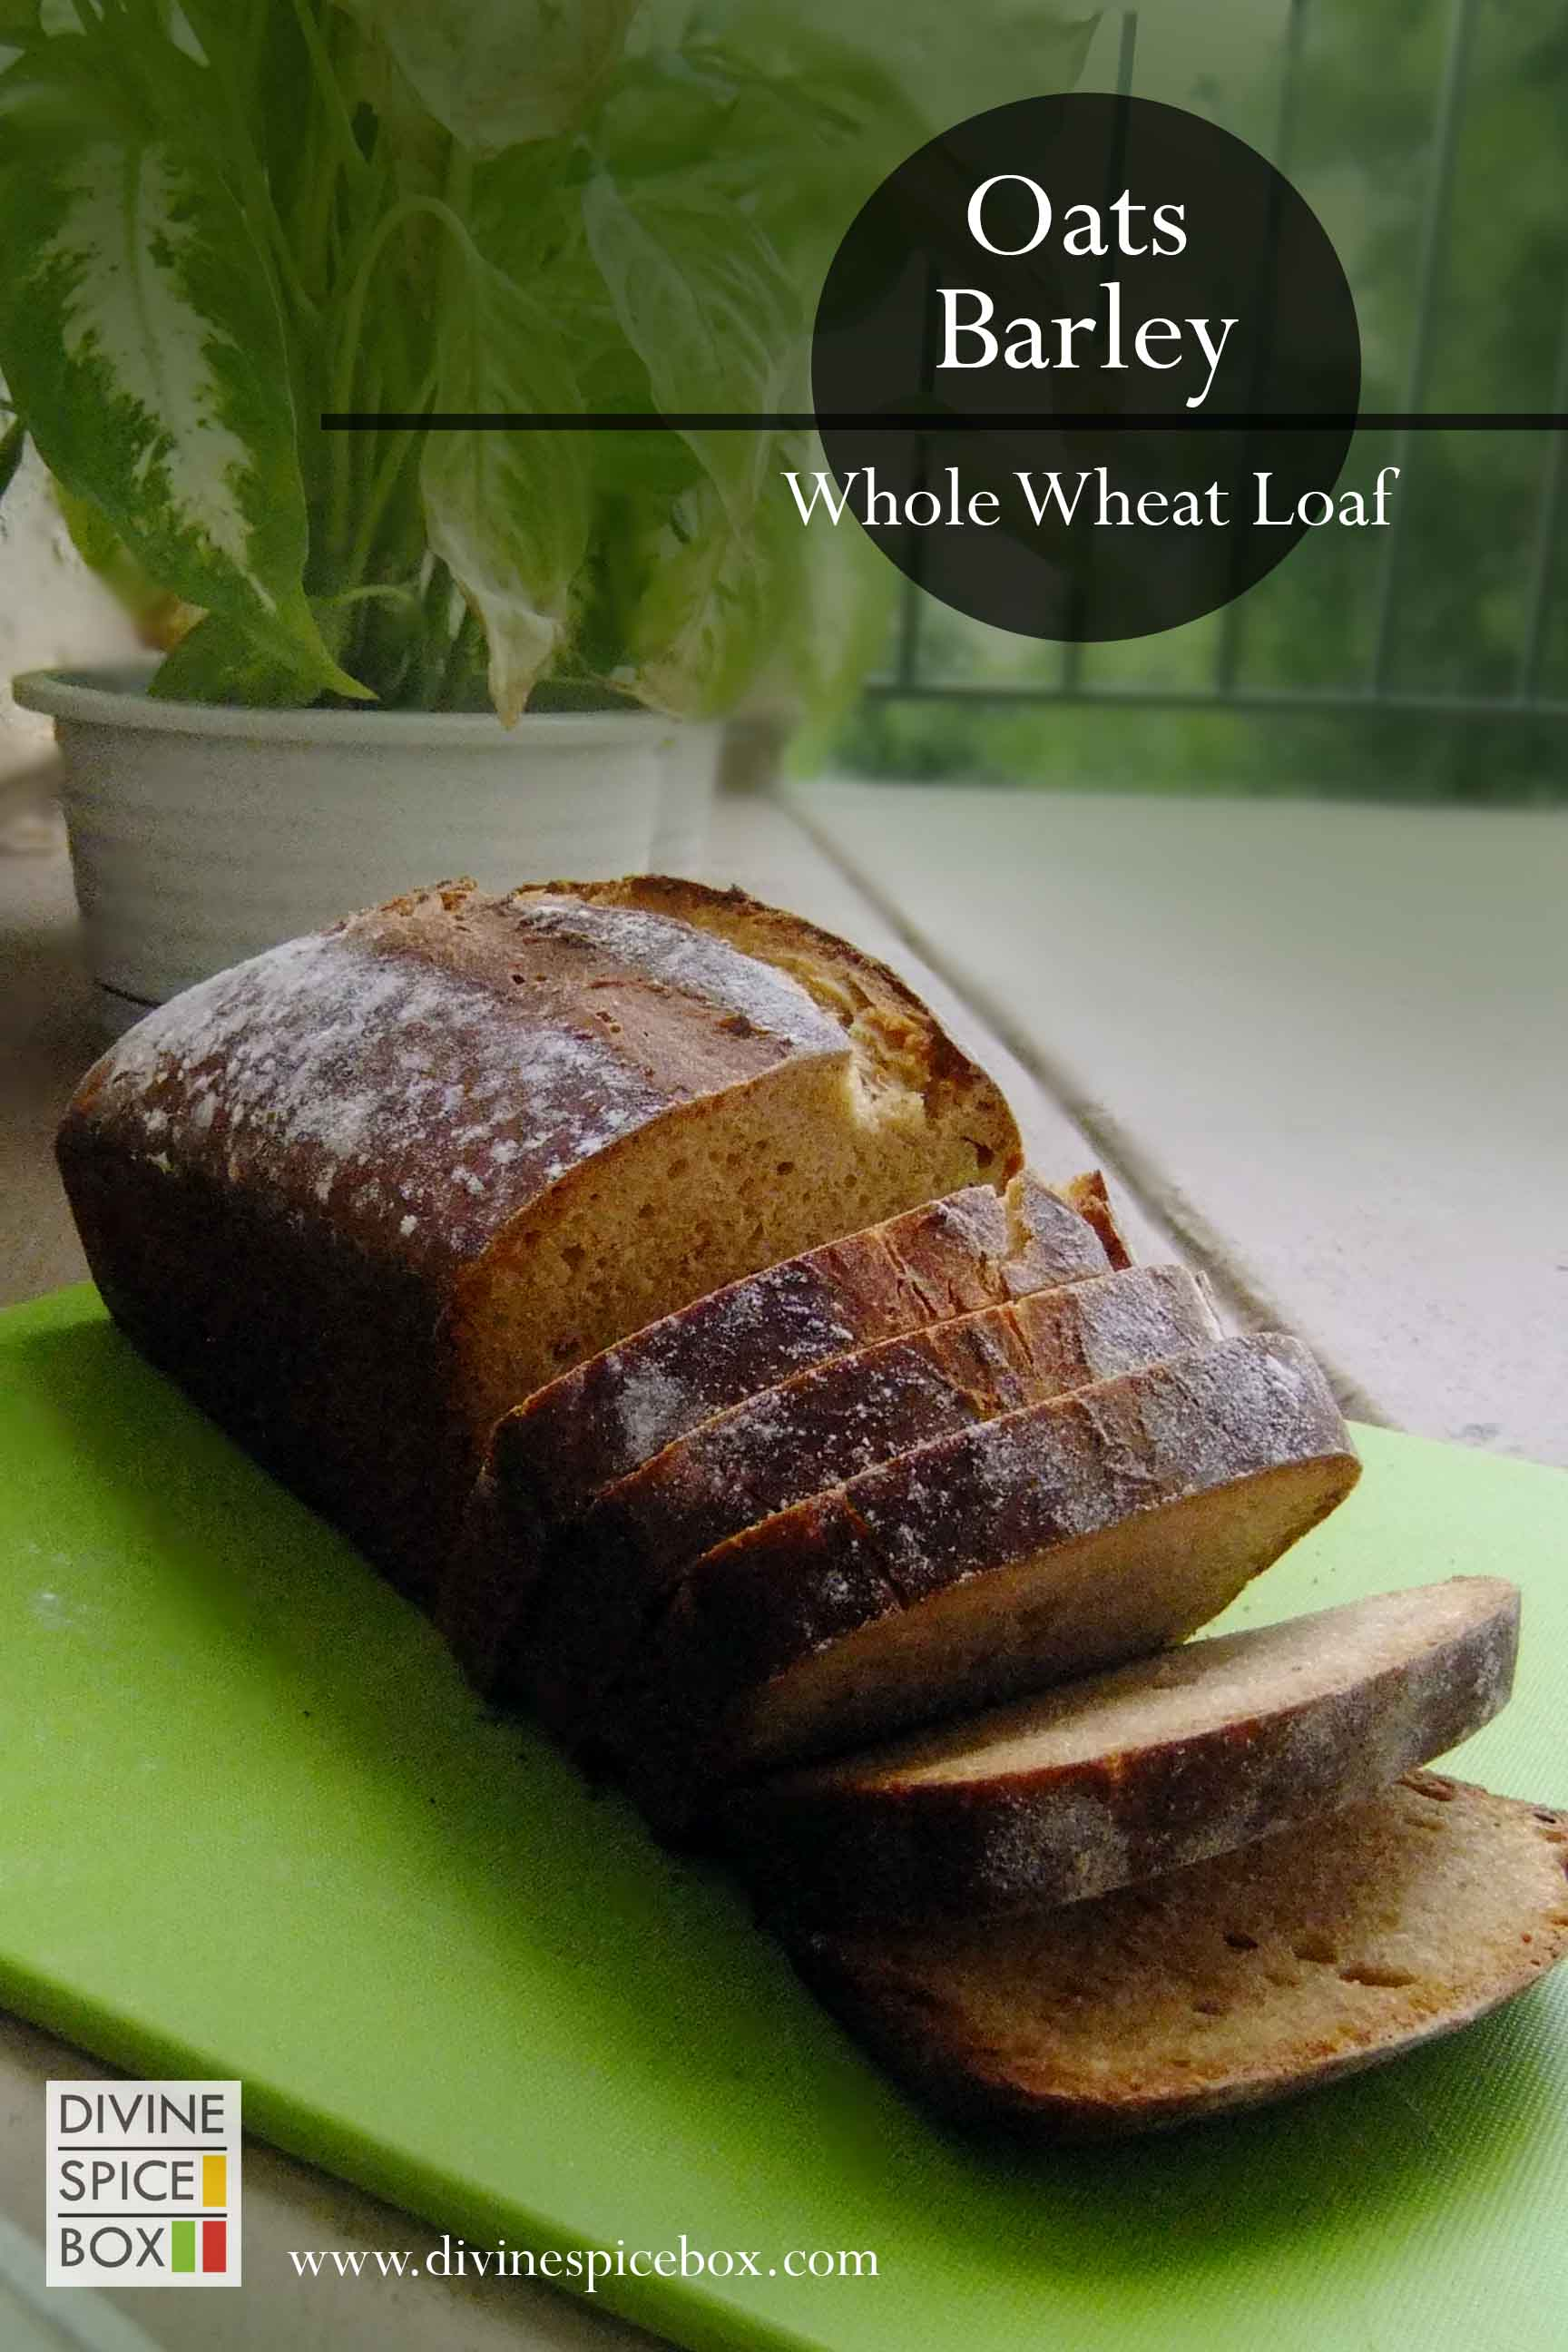 oats barley whole wheat loaf copy